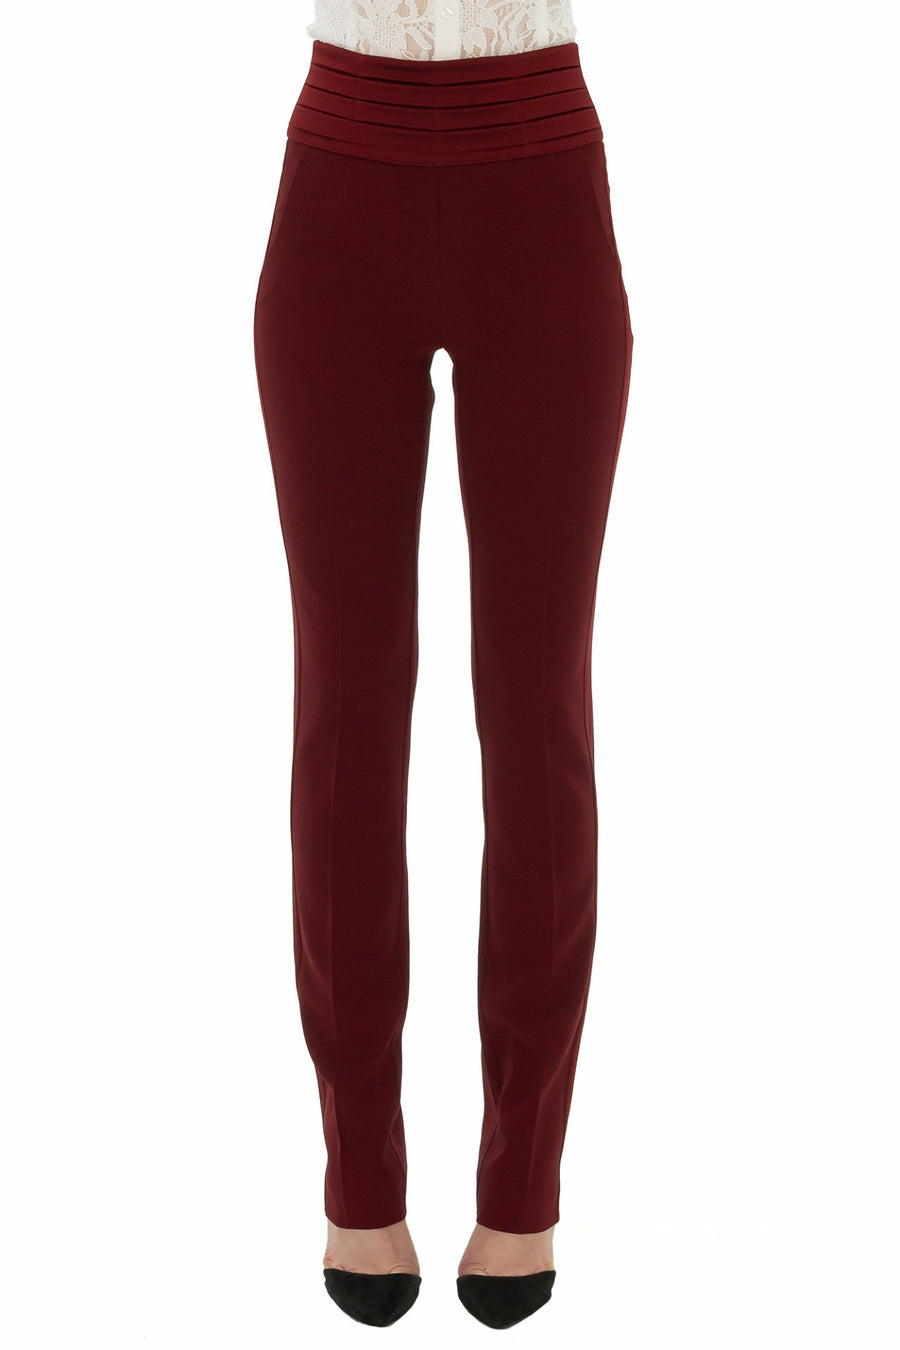 STEFANIE-RENOMA-HIGH-WAISTED-BURGUNDY-TUXEDO-TROUSERS-SILKARMOUR